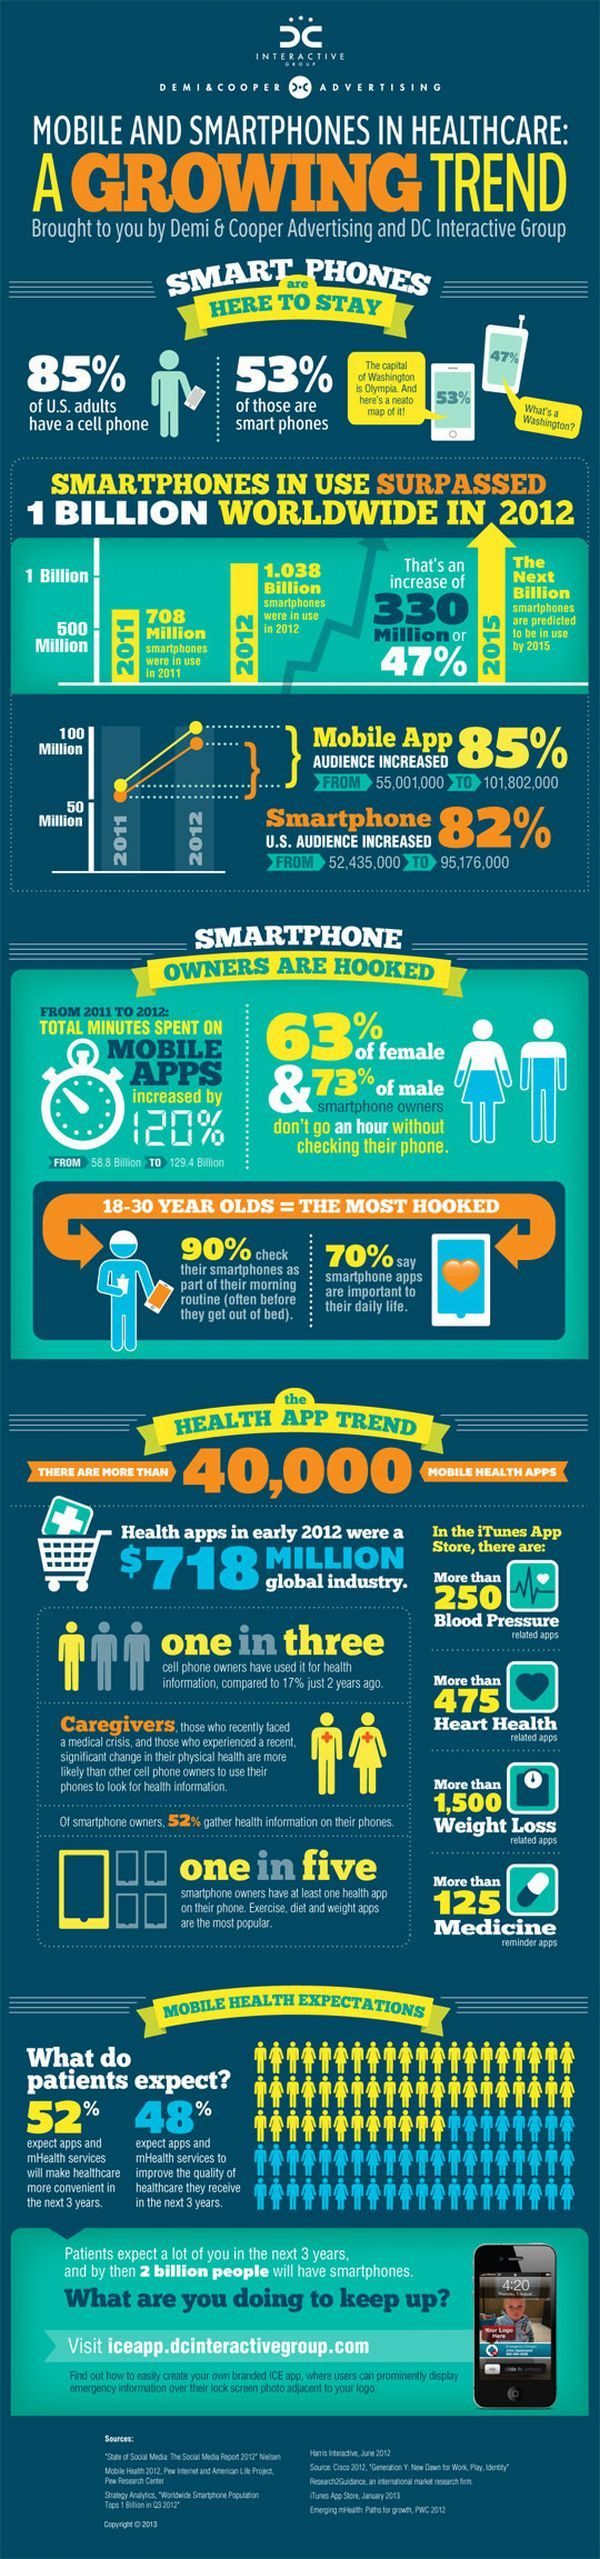 Infographic: Use of health apps to skyrocket | Articles | Main